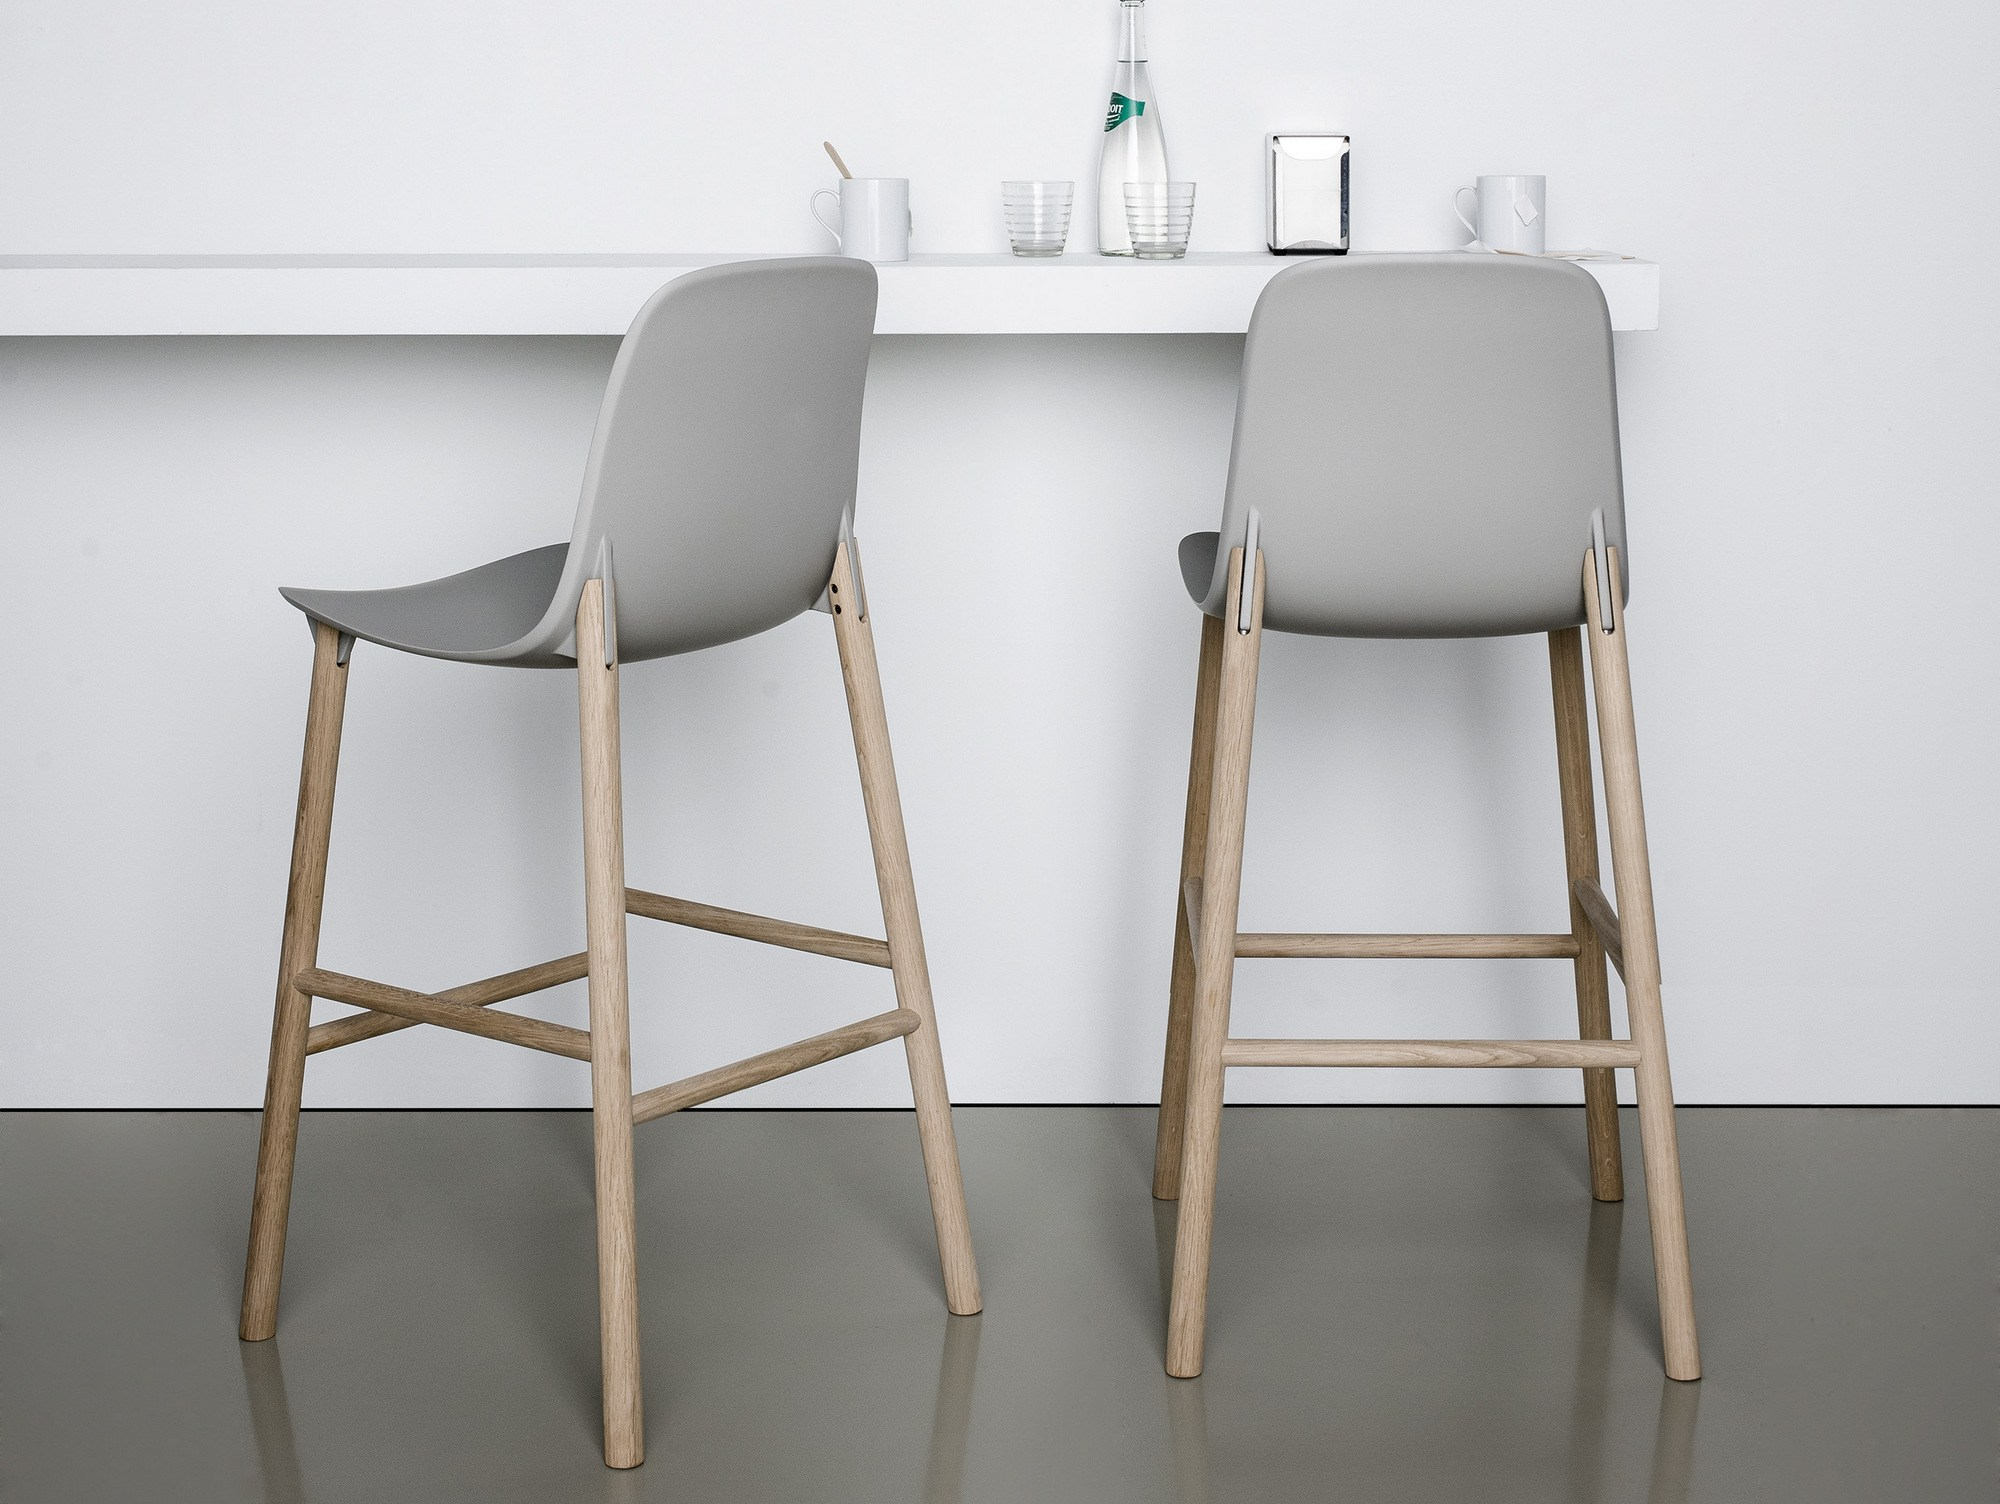 Sharky Stools by Neuland Industriedesign for Kristalia